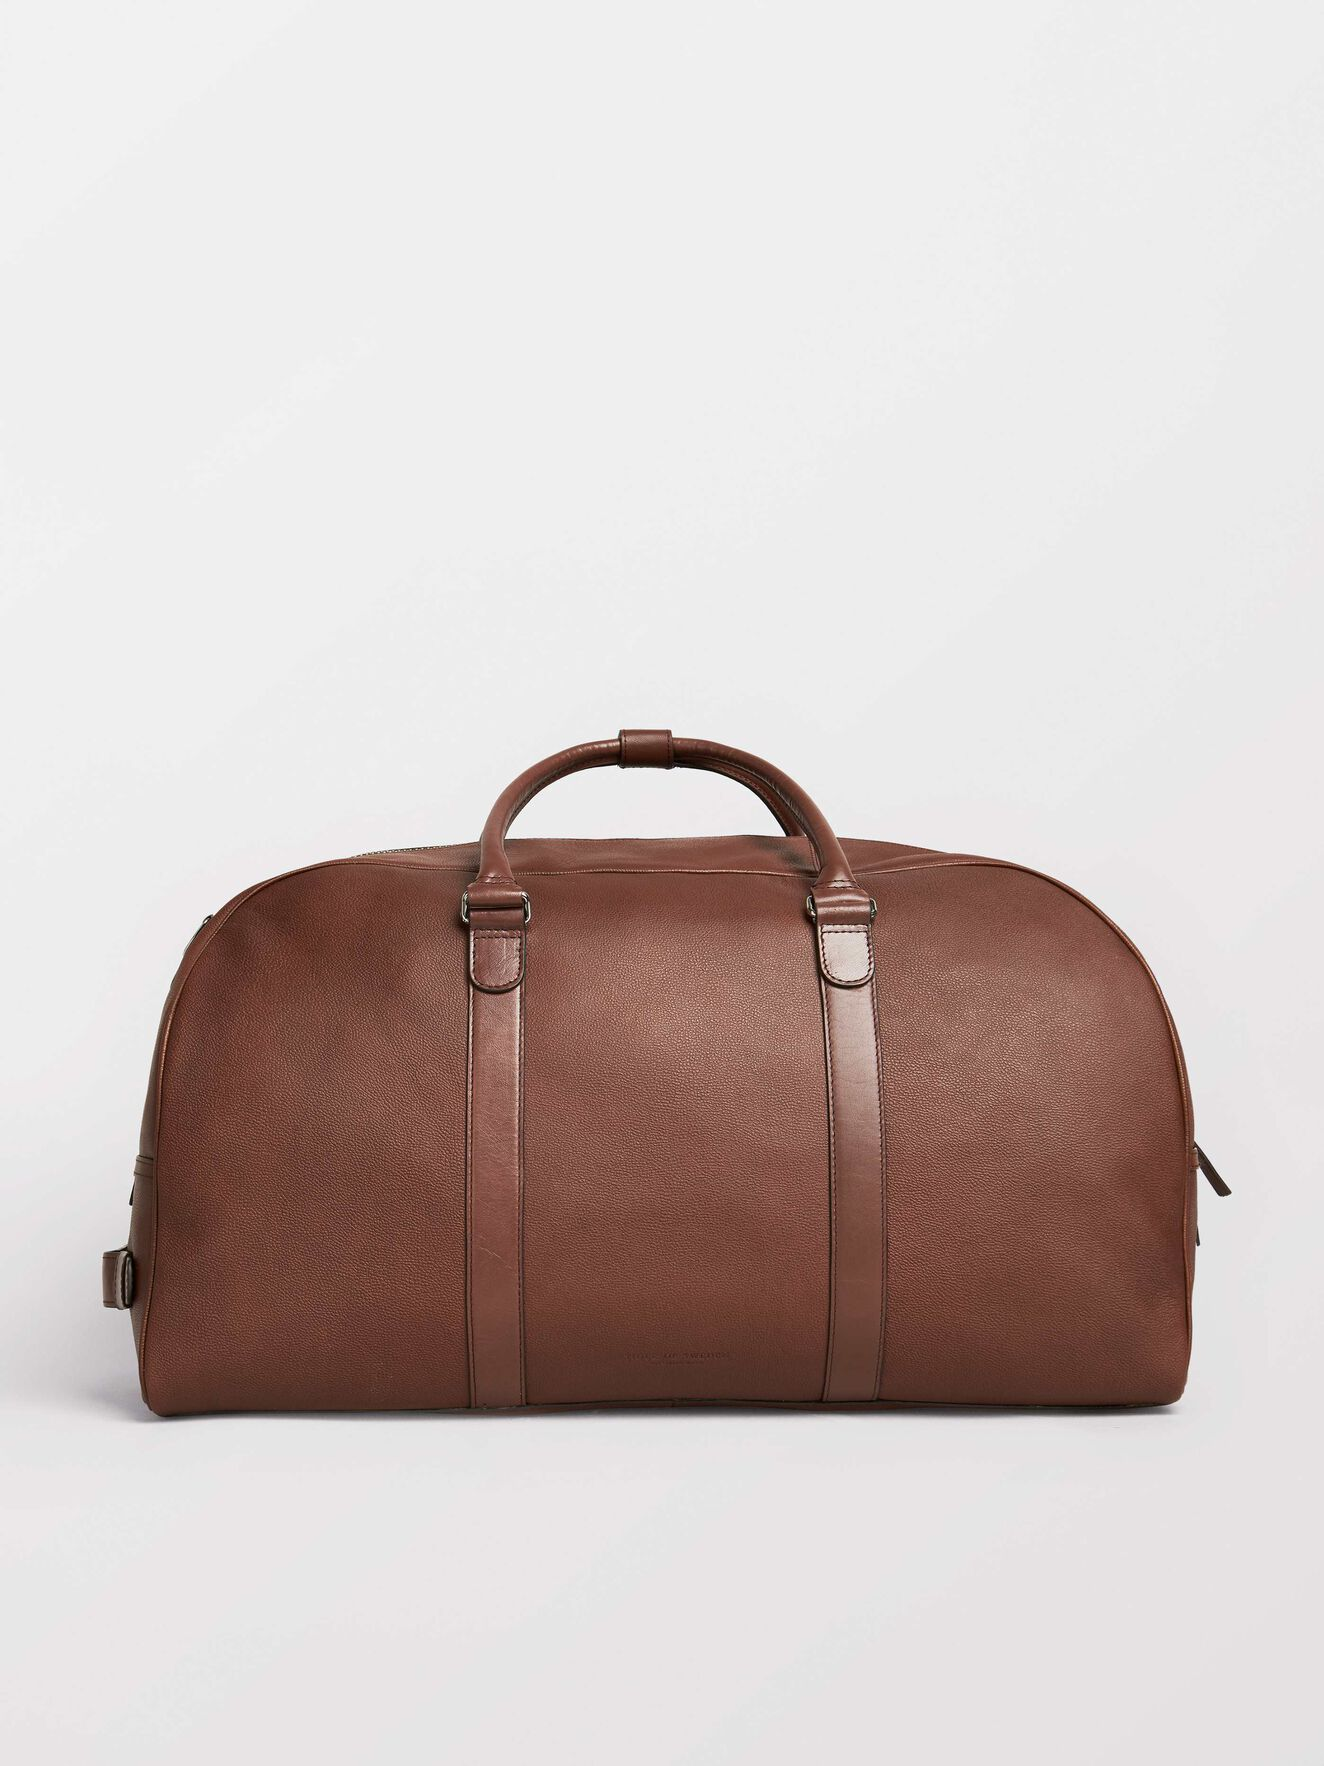 Pinchon Weekend Bag in Medium Brown from Tiger of Sweden